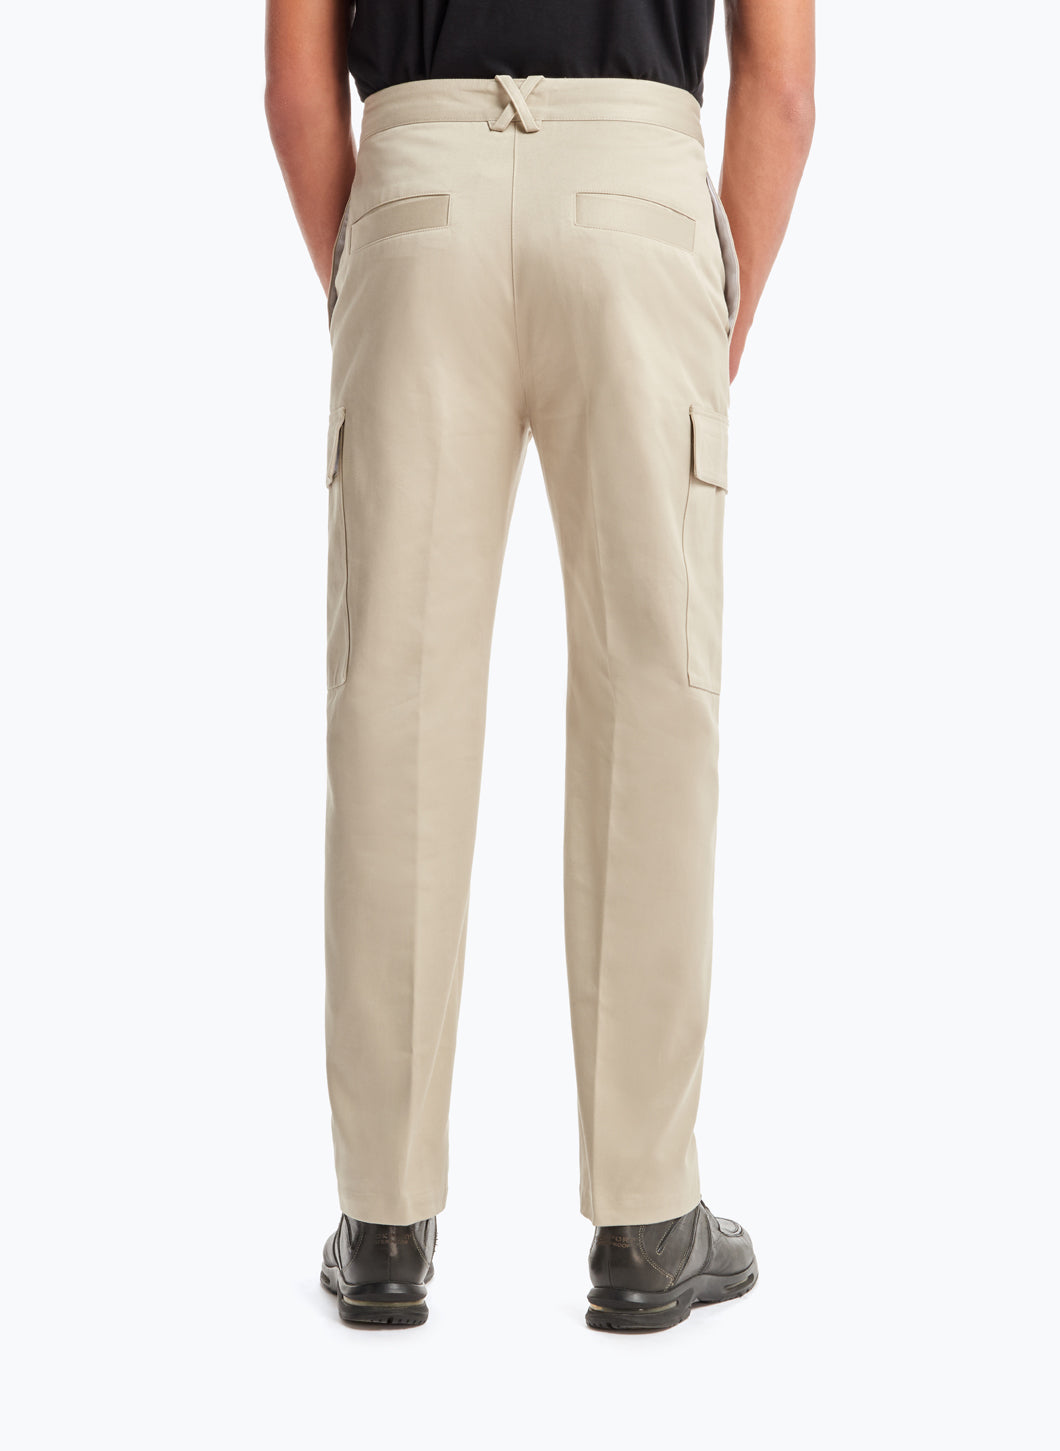 Pants with Cargo Pockets in Beige Cotton Gabardine